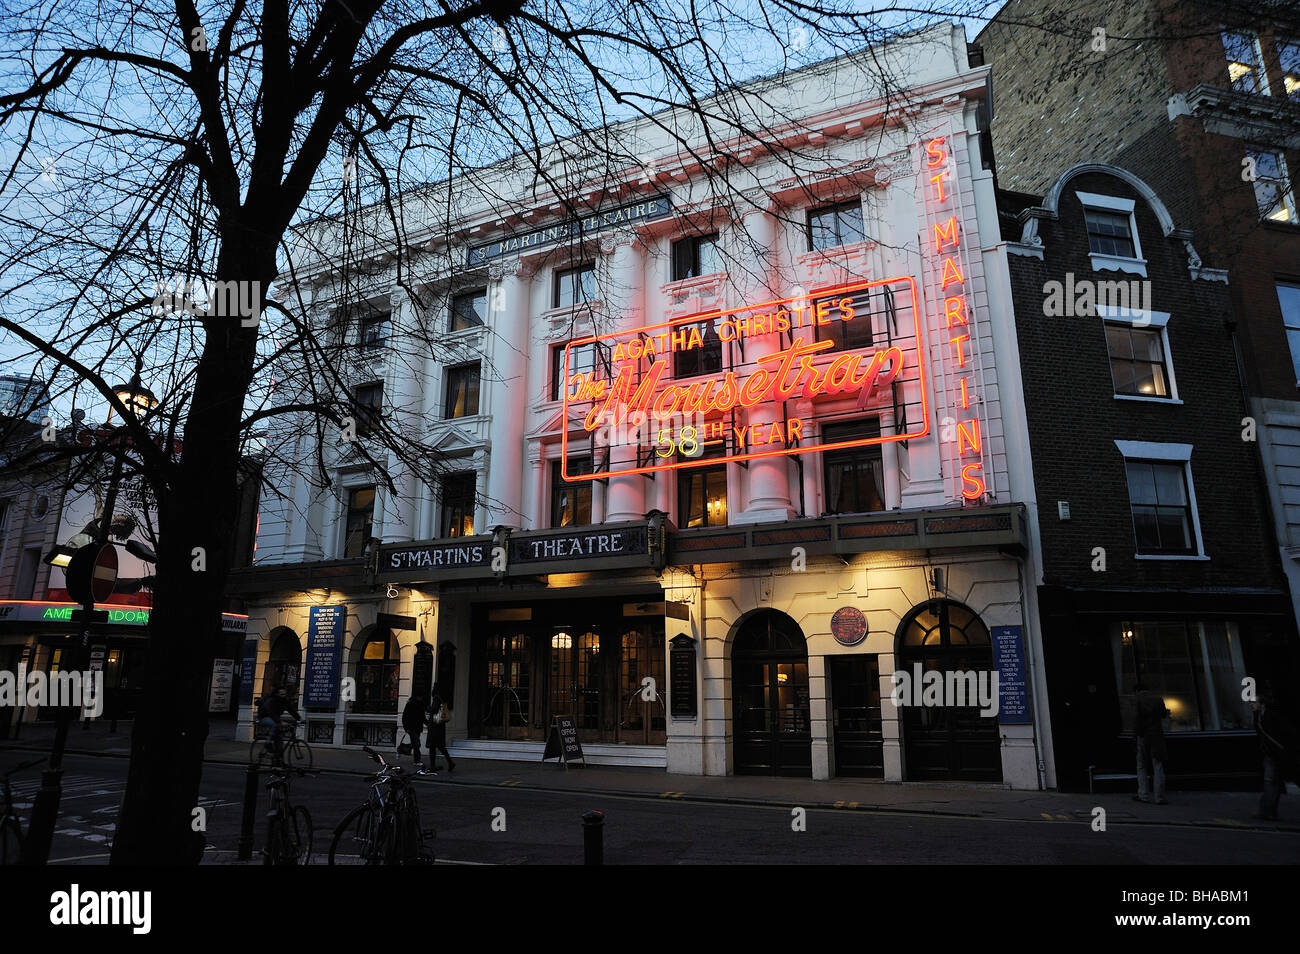 St Martins theatre the mouse trap L London westend - Stock Image